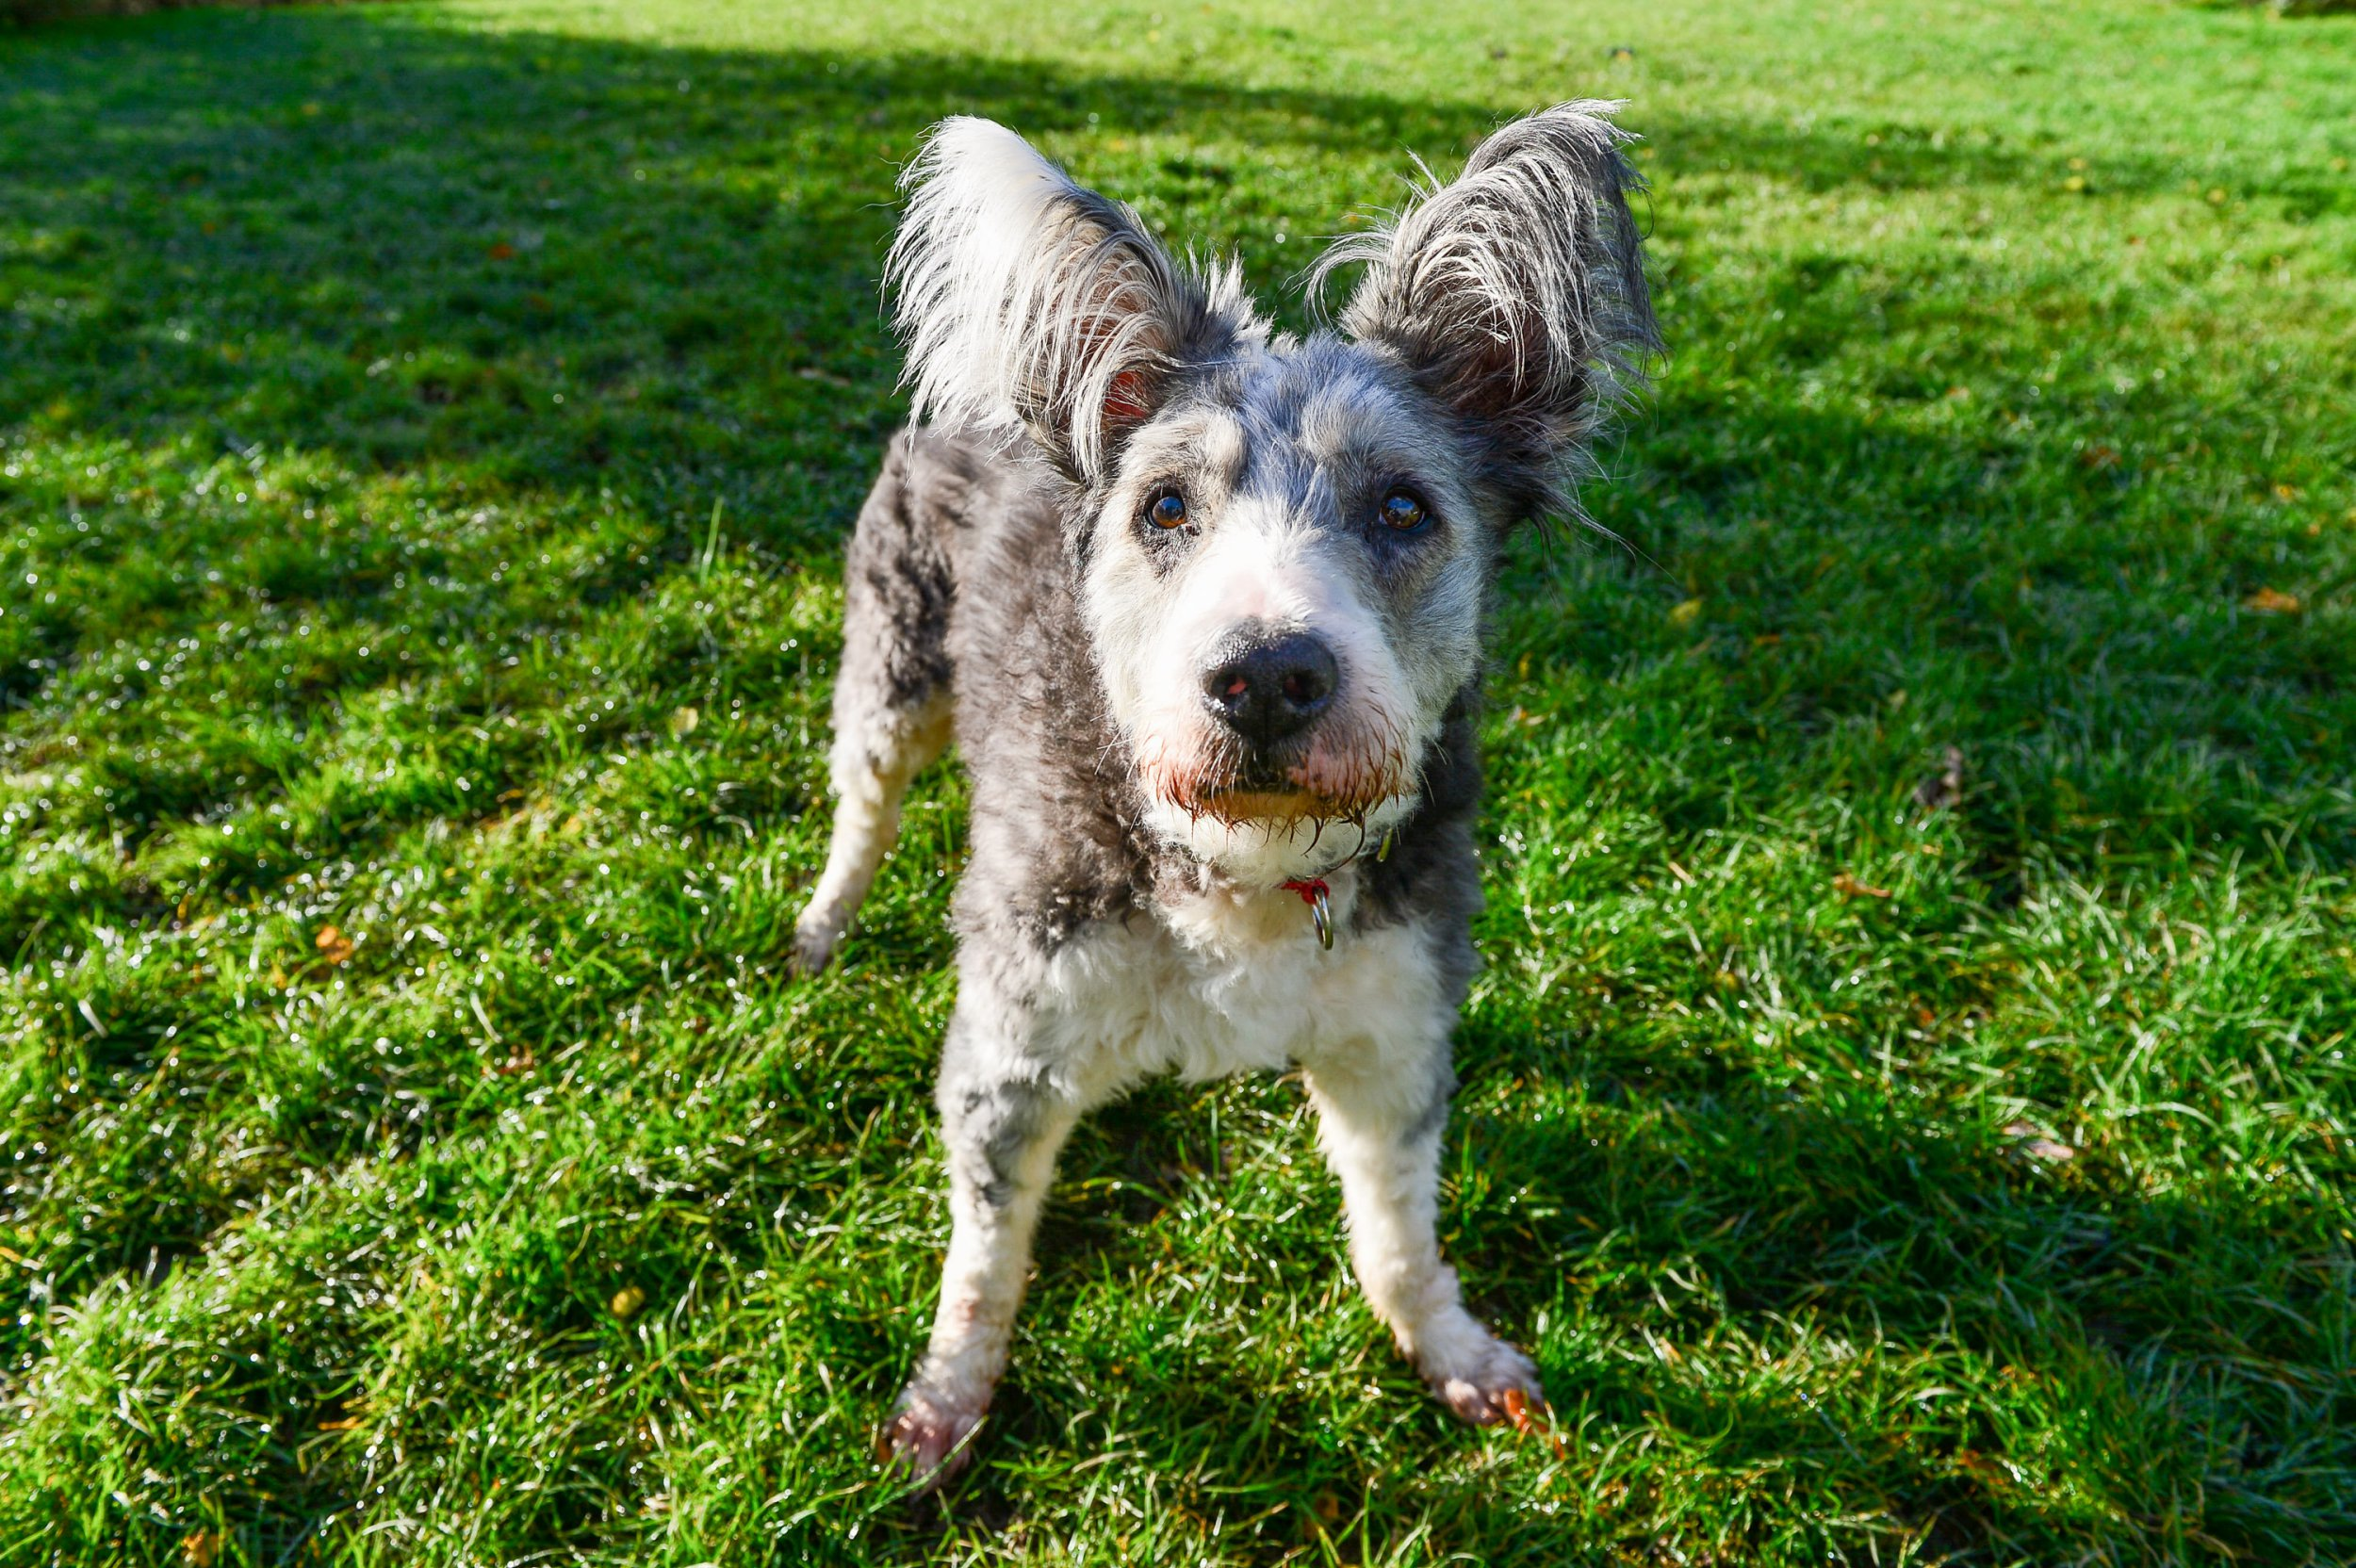 Twelve year old Bearded Collie cross Tug is looking for his forever home having been taken in by the RSPCA in Coventry. Tug is friendly, affectionate and has a massive zest for life, despite not having an easy life recently.See SWNS story SWMDdog.One of Britain's loneliest rescue dogs is struggling to find a home ??? because people are put off by its large bat-like EARS.Collie crossbreed Tug was taken in by the RSPCA after it was found abandoned in a terrible condition in September.But despite making a full recovery, the 12-year-old mutt has not had a single enquiry from potential owners in the three months since his rescue.Staff at Coventry???s RSPCA branch say Tug???s big ears and lolling tongue have put people off.